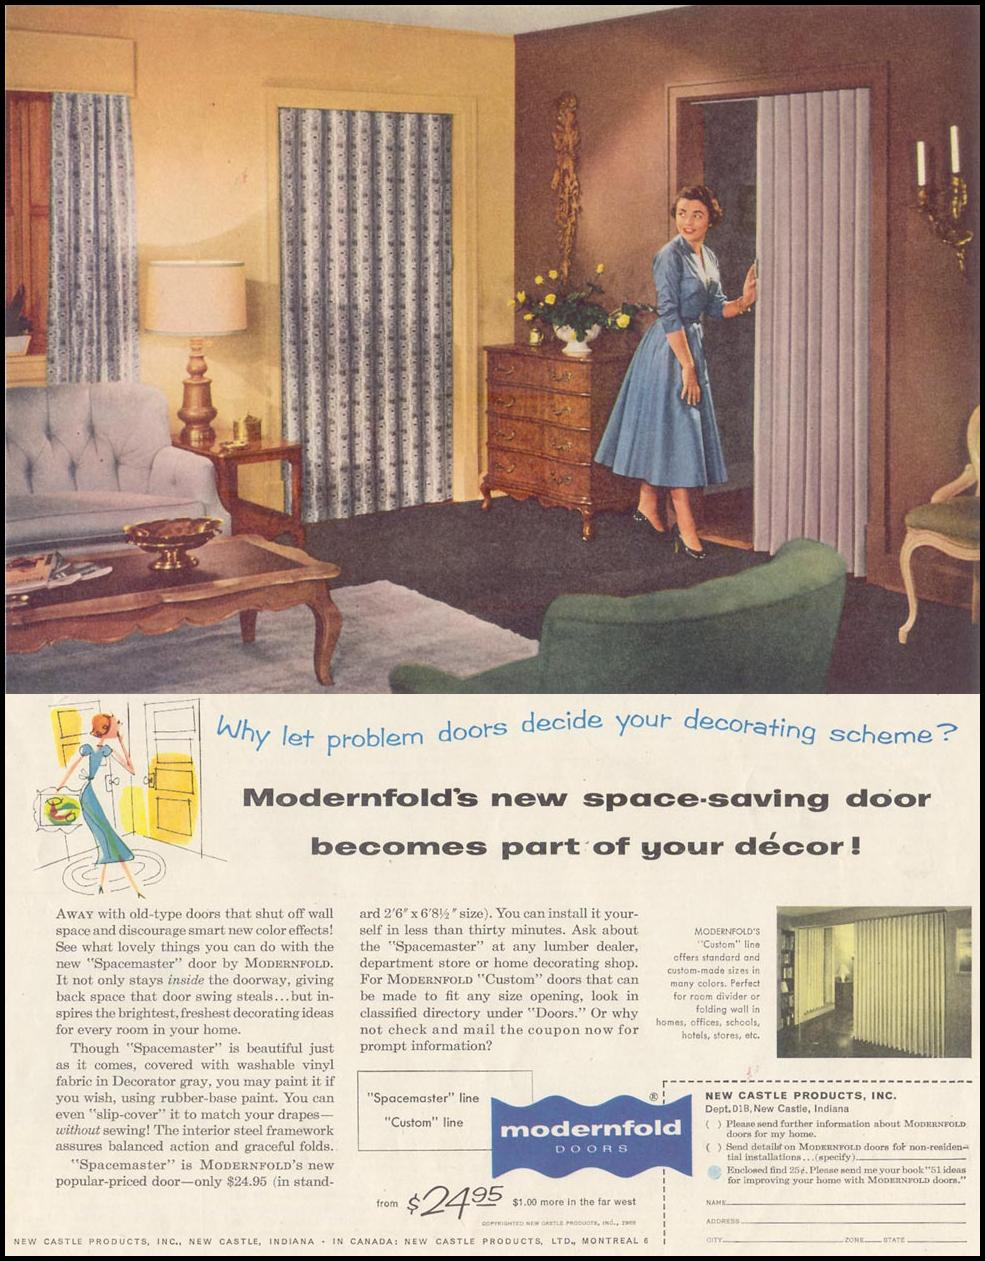 MODERNFOLD SPACEMASTER DOORS SATURDAY EVENING POST 04/09/1955 p. 131